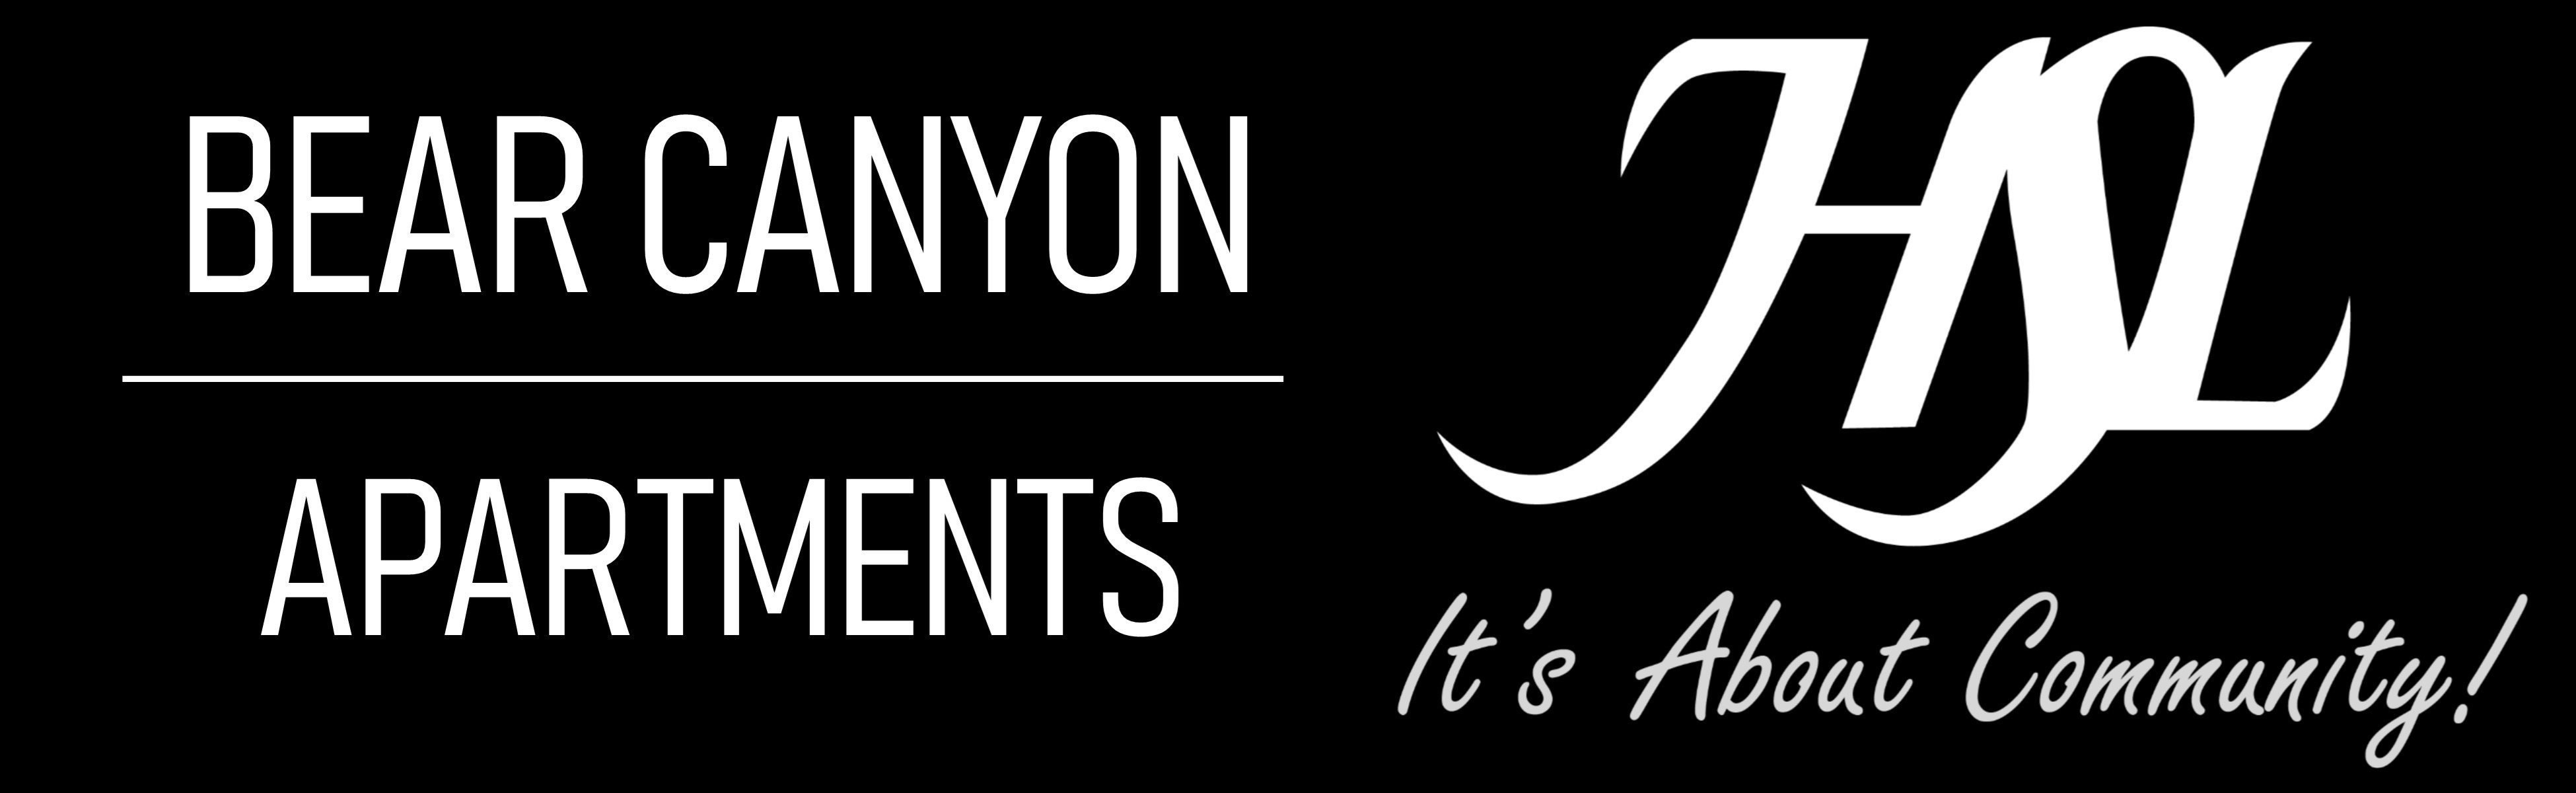 Bear Canyon Apartments Logo